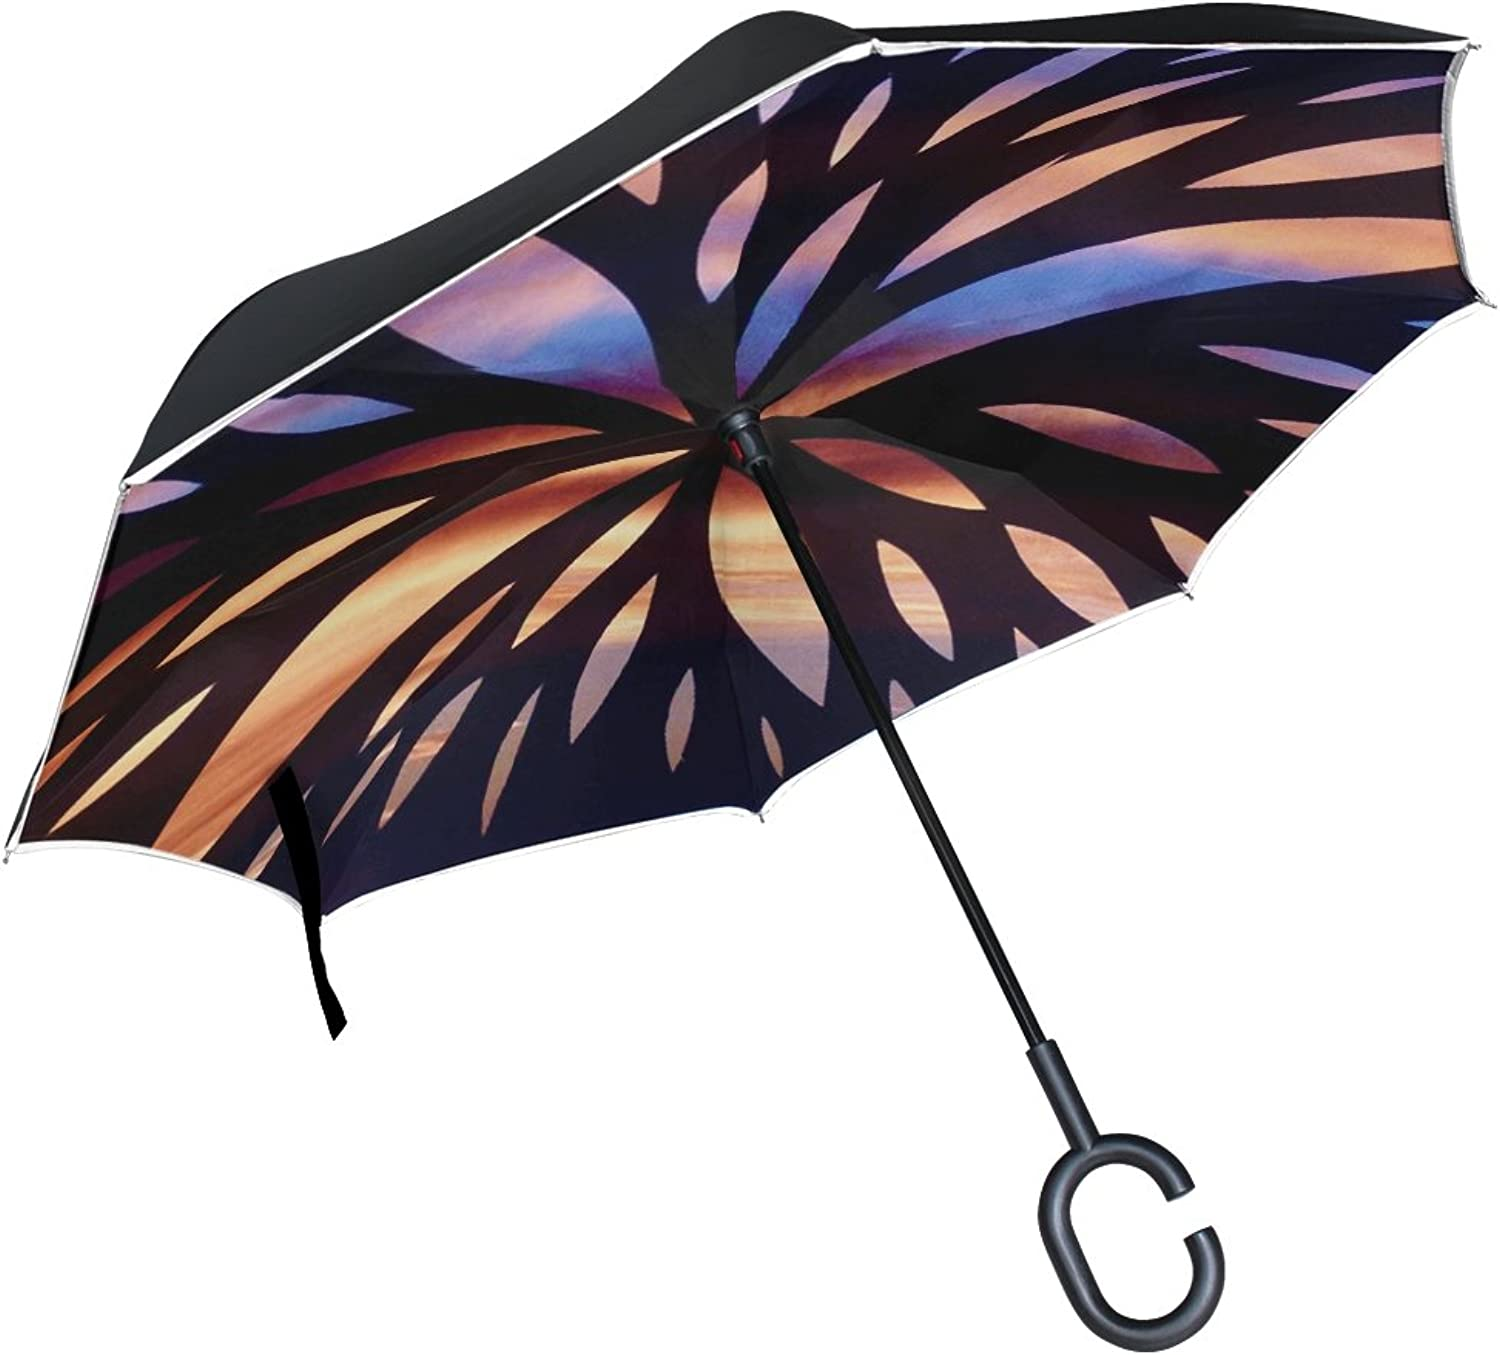 Double Layer Ingreened color Beam Silhouette Art Umbrellas Reverse Folding Umbrella Windproof Uv Predection Big Straight Umbrella for Car Rain Outdoor with CShaped Handle